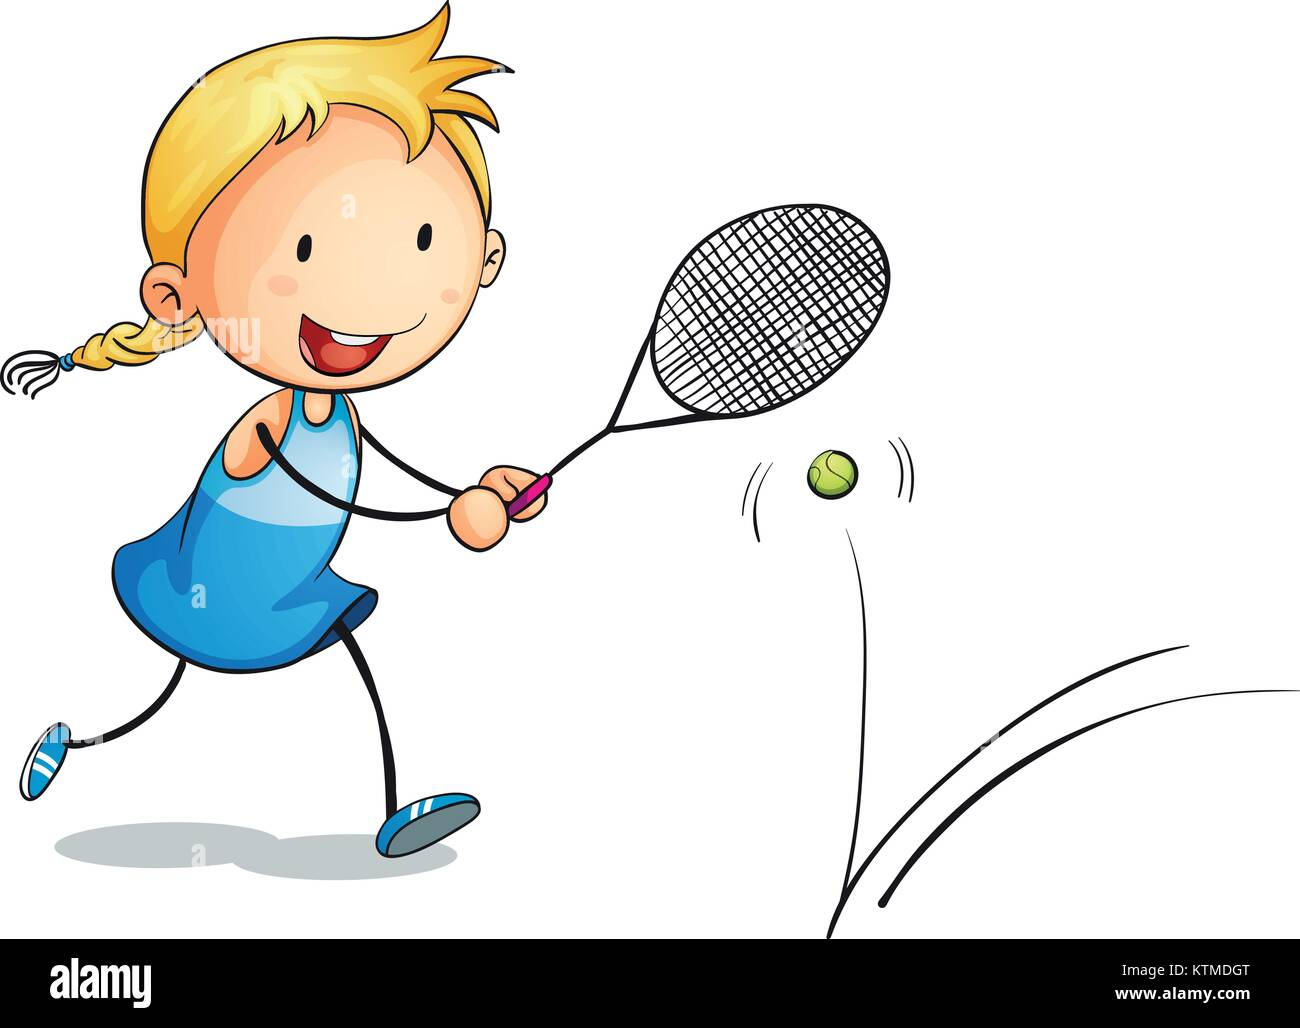 illustration of a girl playing tennis on a white - Stock Image